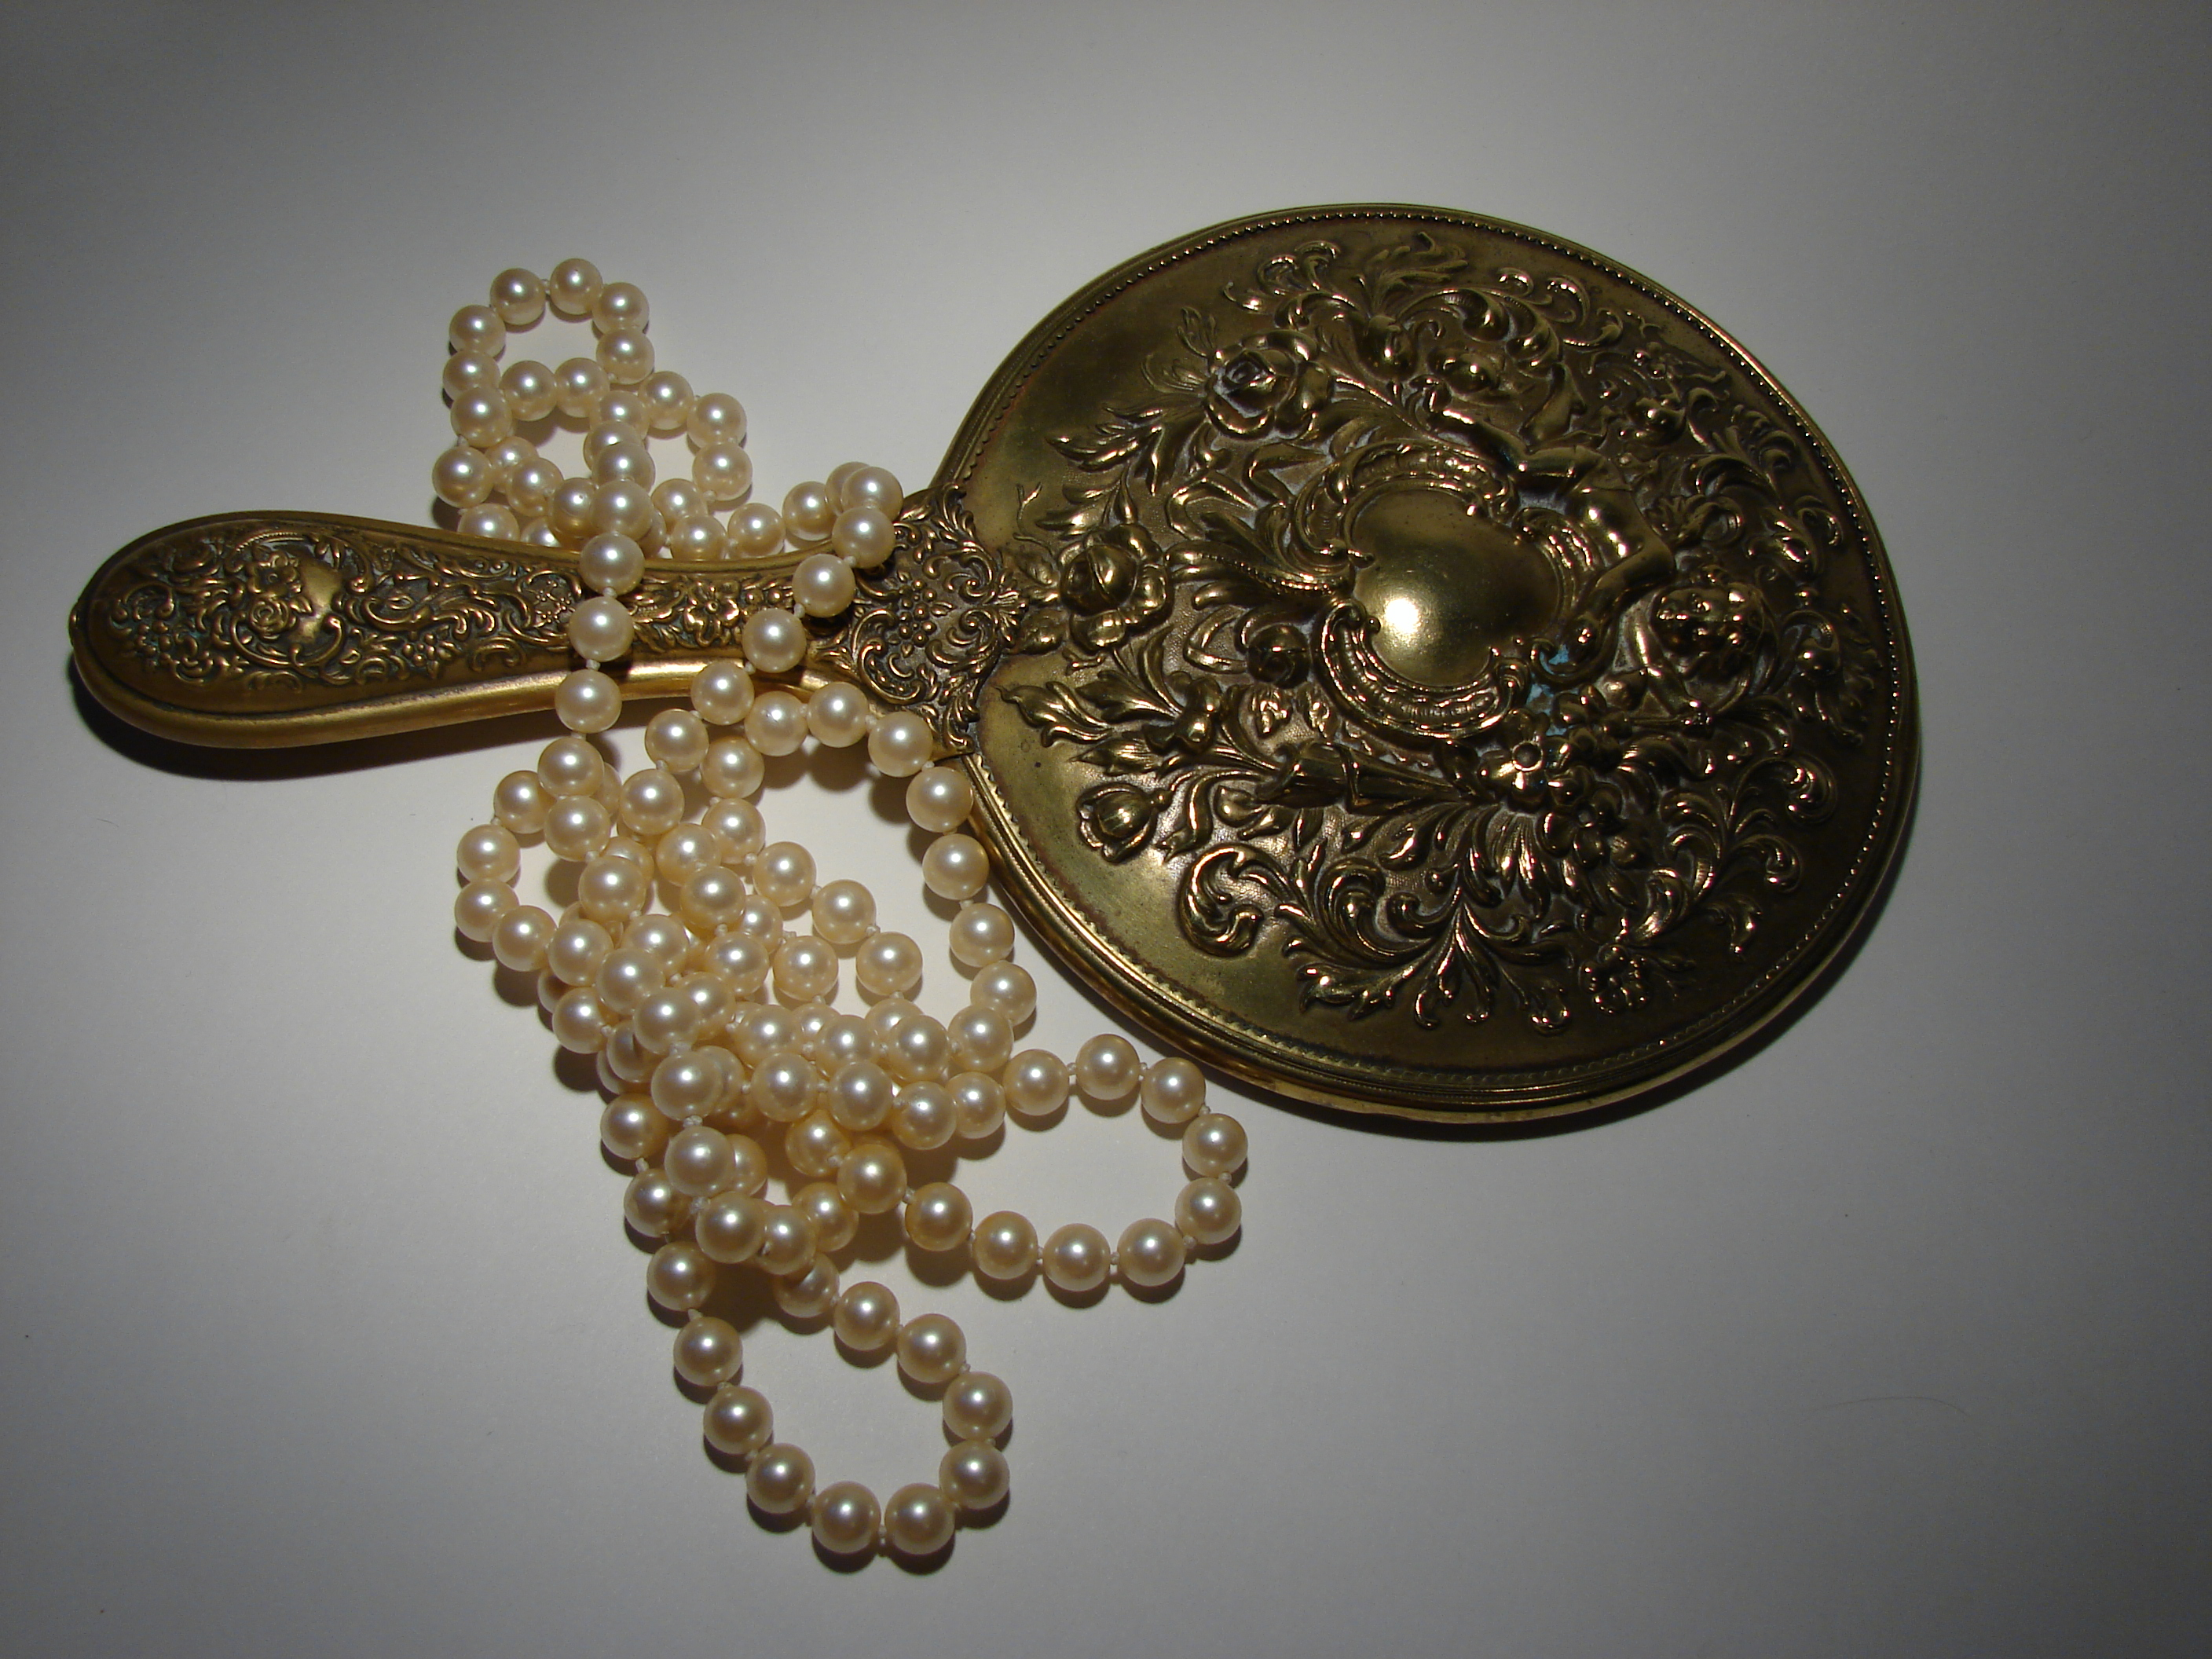 Photo of antique hand held mirror and pearl necklace